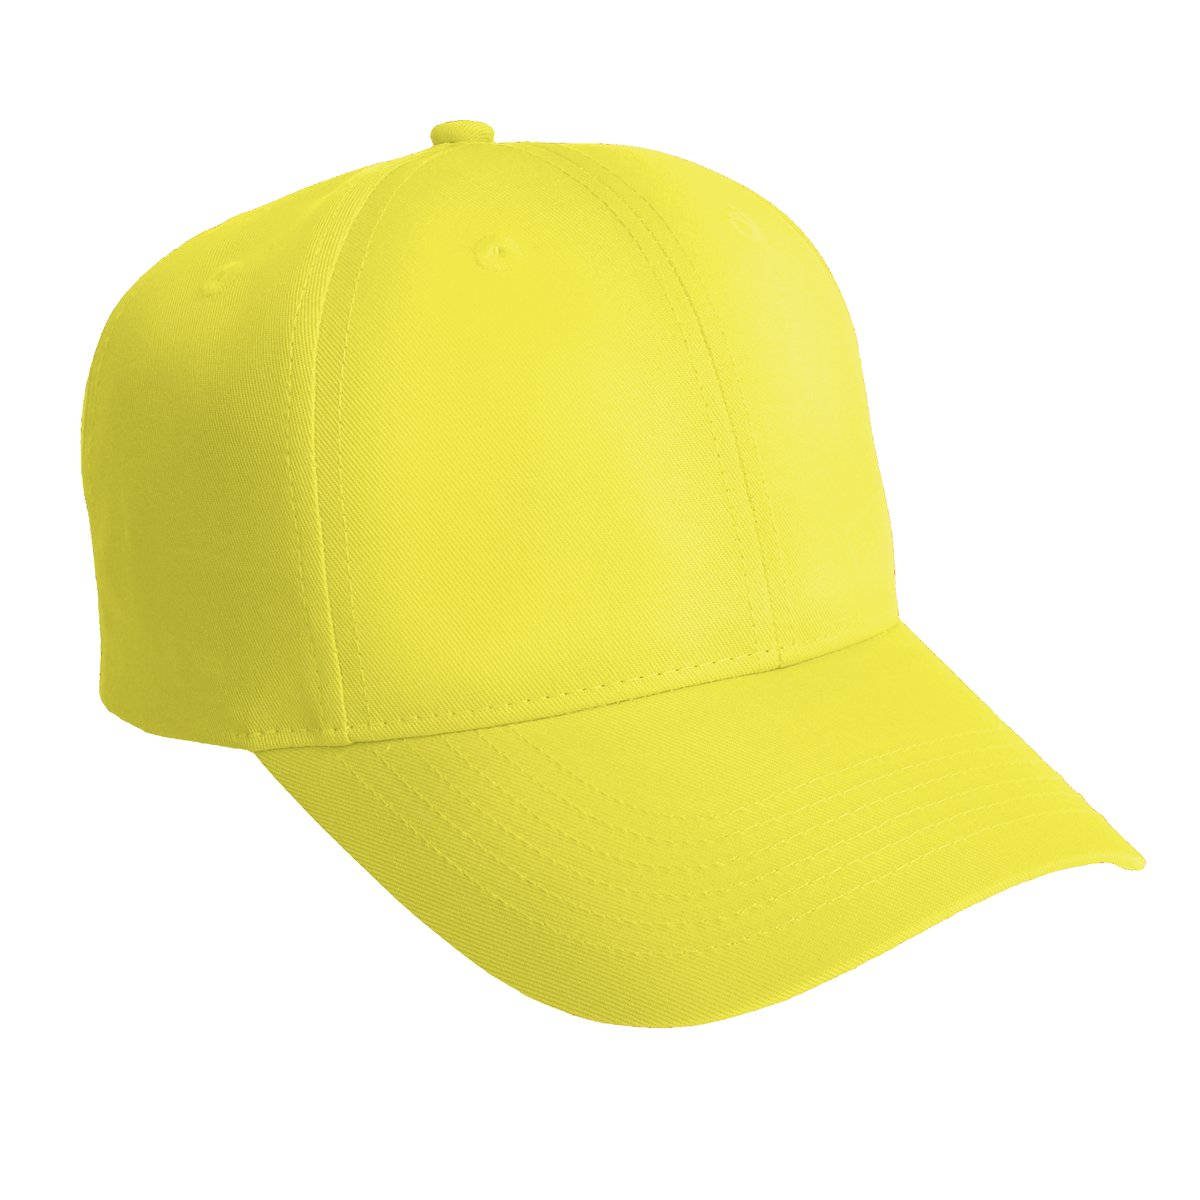 Port Authority ®  Solid Enhanced Visibility Cap. C806 - Safety Yellow